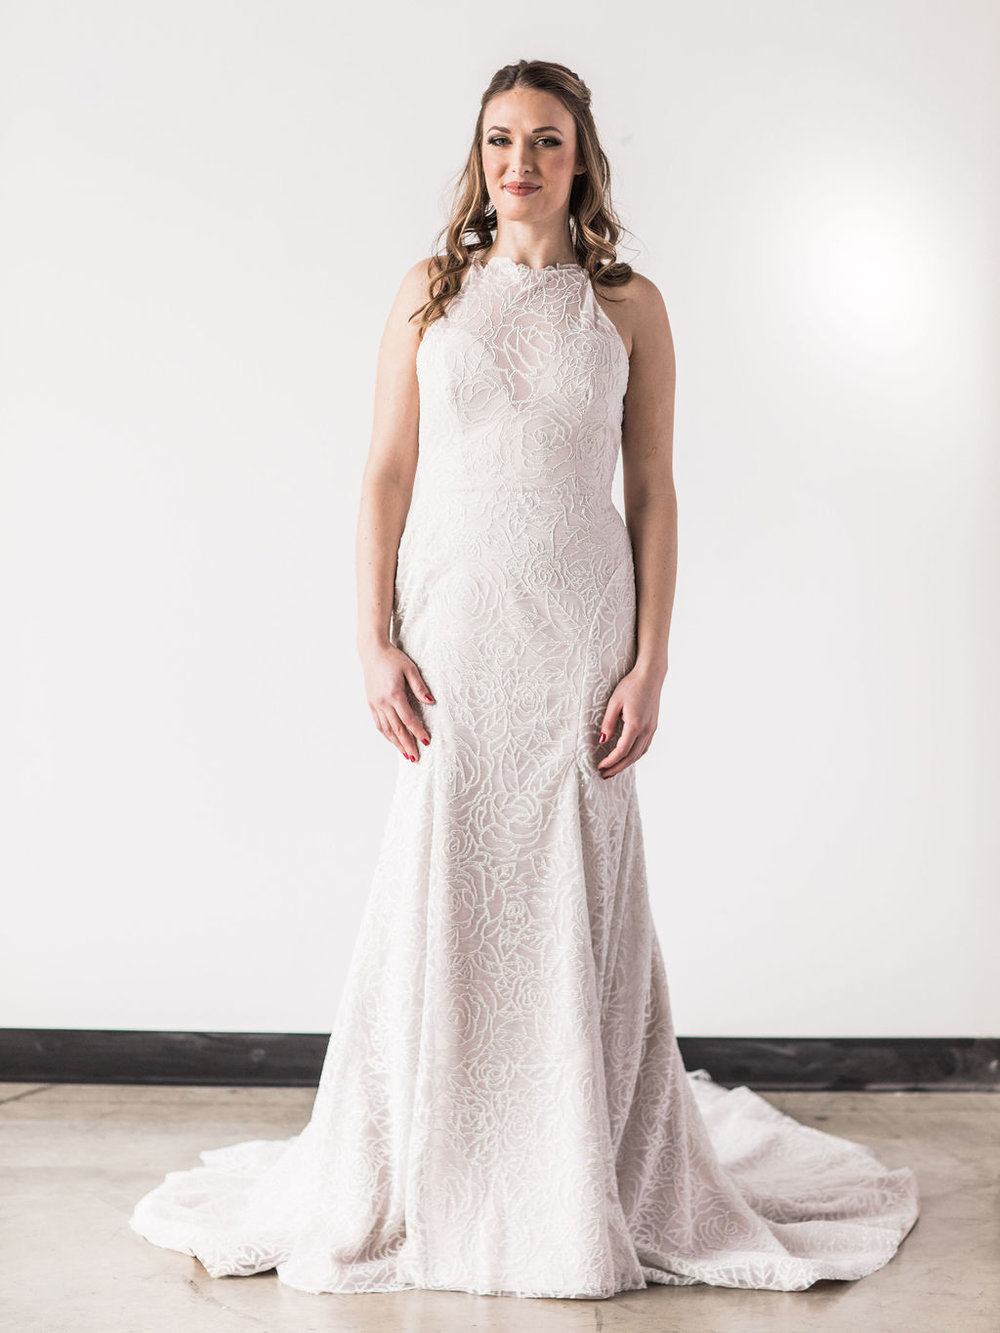 Hayley Paige fitted sparkle floral wedding dress bride spokane